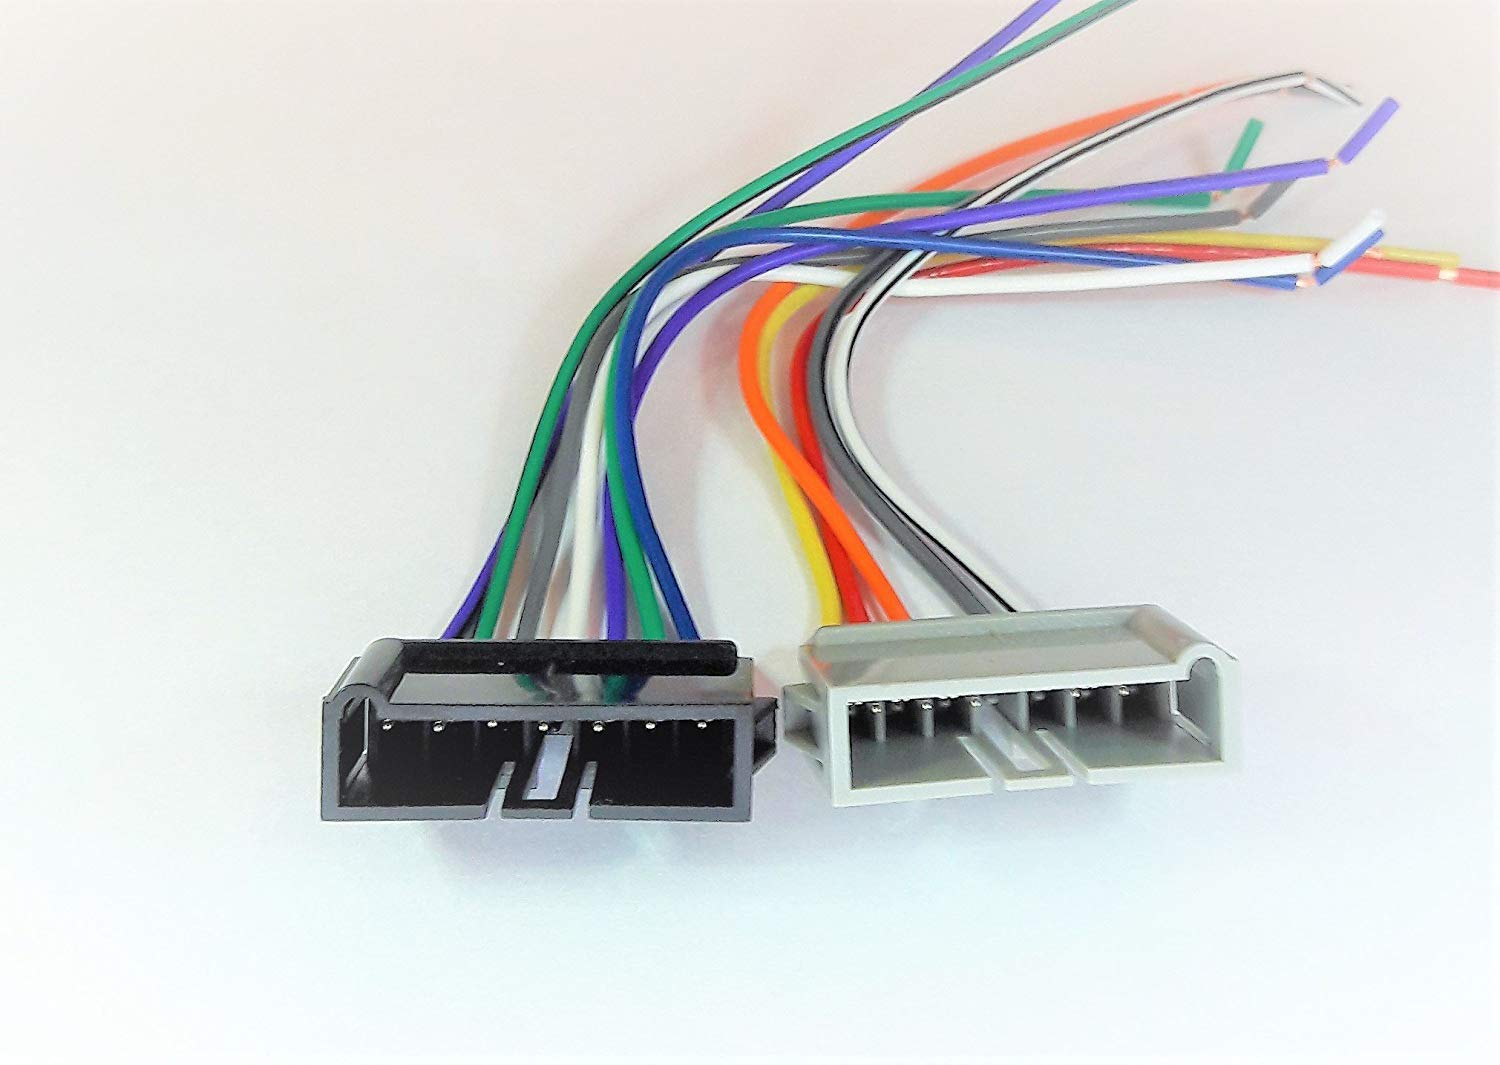 hight resolution of wire harness cwh 638 diagram wiring libraryget quotations carxtc radio wire harness installs new